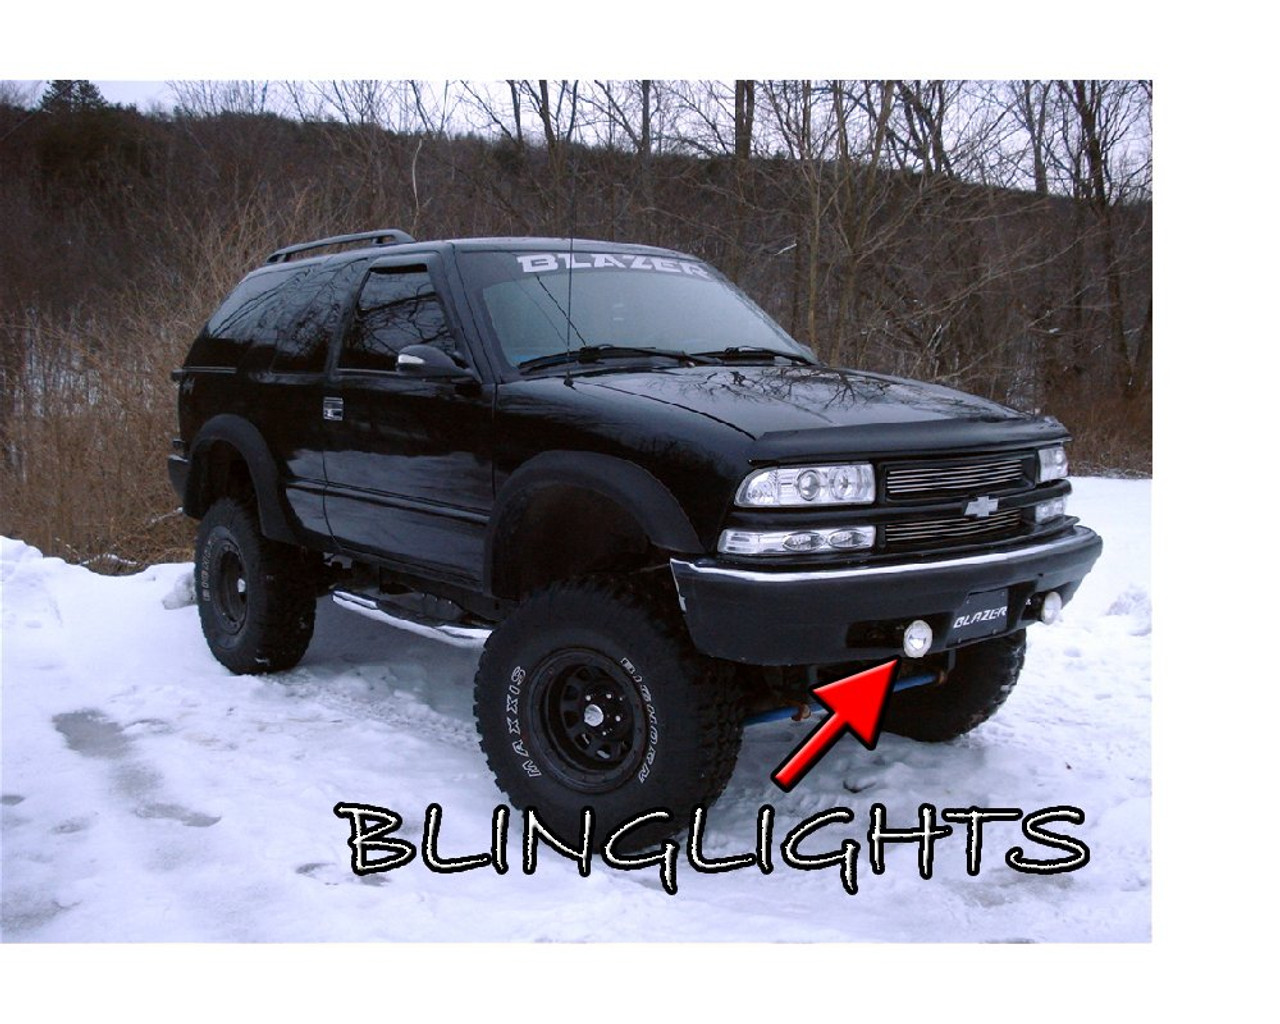 1999 2000 2001 Chevrolet Trailblazer Chevy Blazer Halo Fog Lamps Angel Eye Driving Lights Kit Blinglights Com